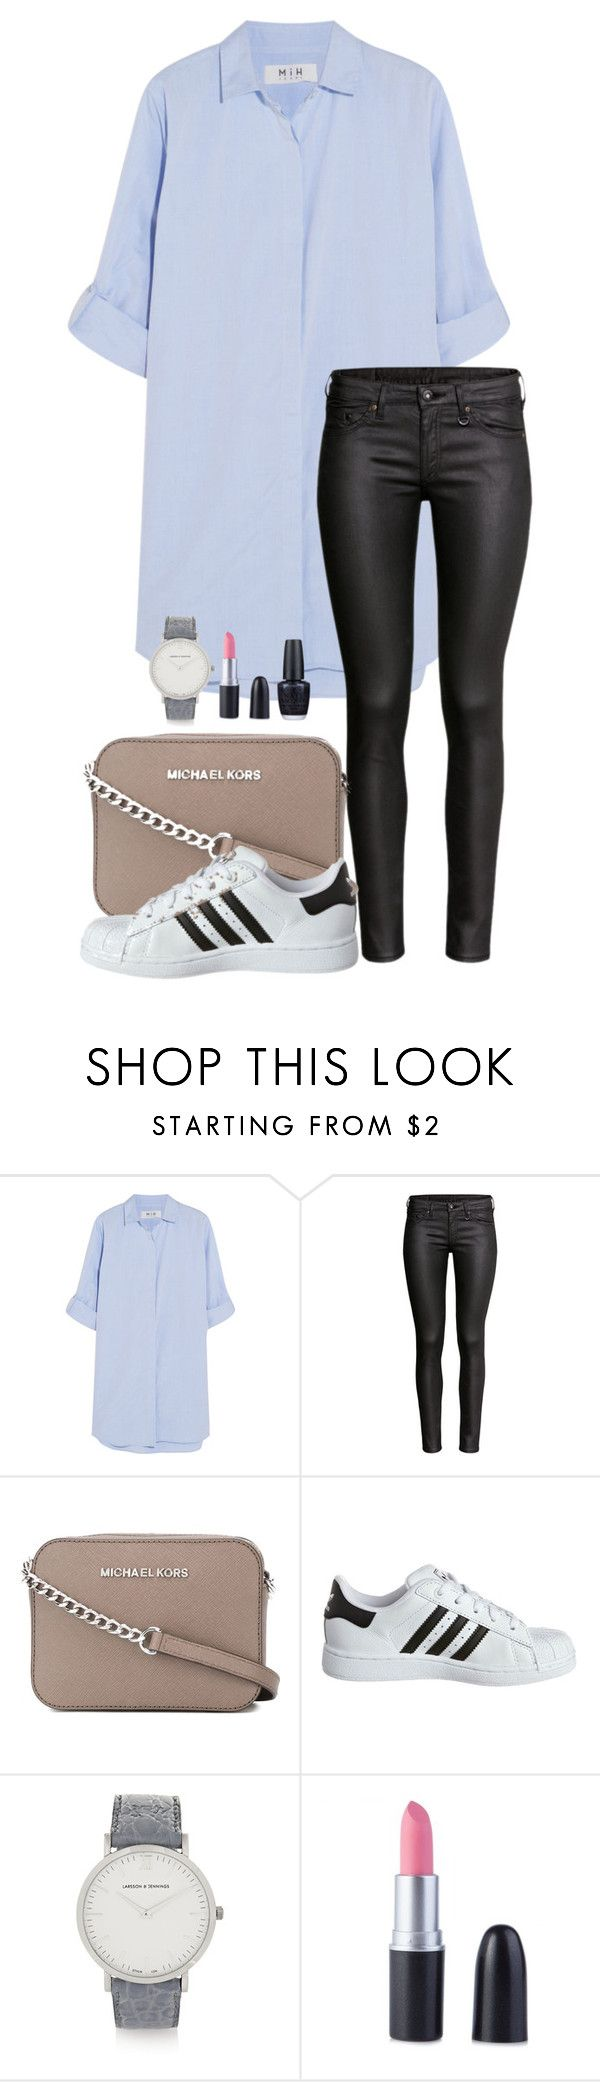 """""""NUMB"""" by eellcat ❤ liked on Polyvore featuring MiH Jeans, H&M, MICHAEL Michael Kors, adidas Originals, Larsson & Jennings and OPI"""